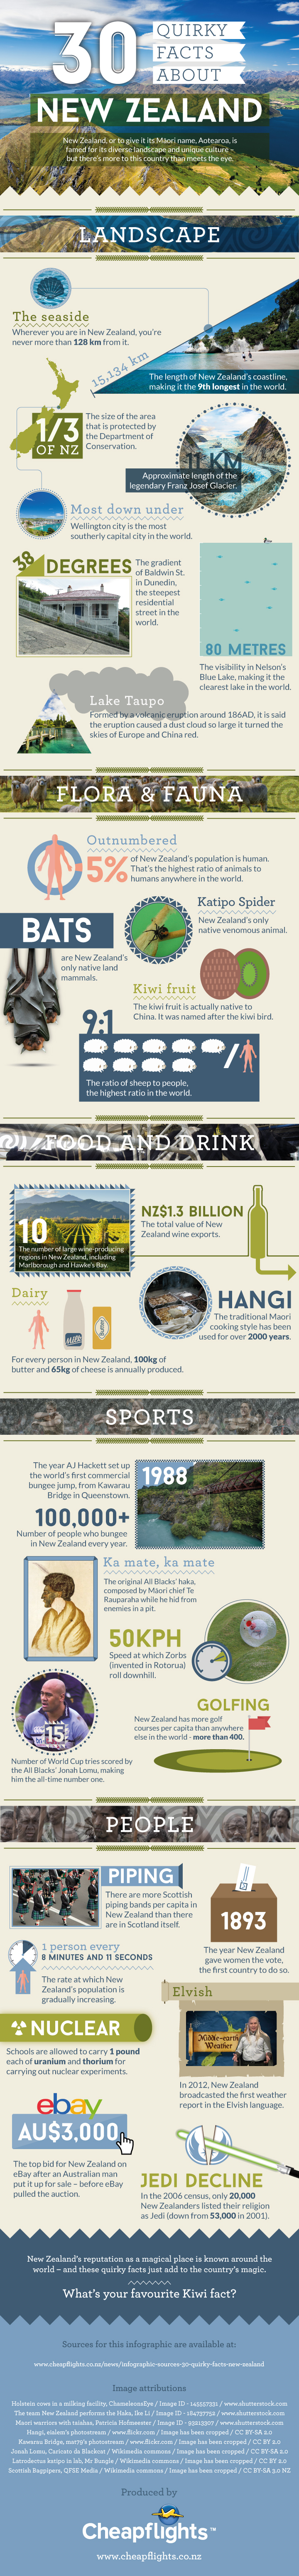 30 quirky facts about New Zealand [infographic]